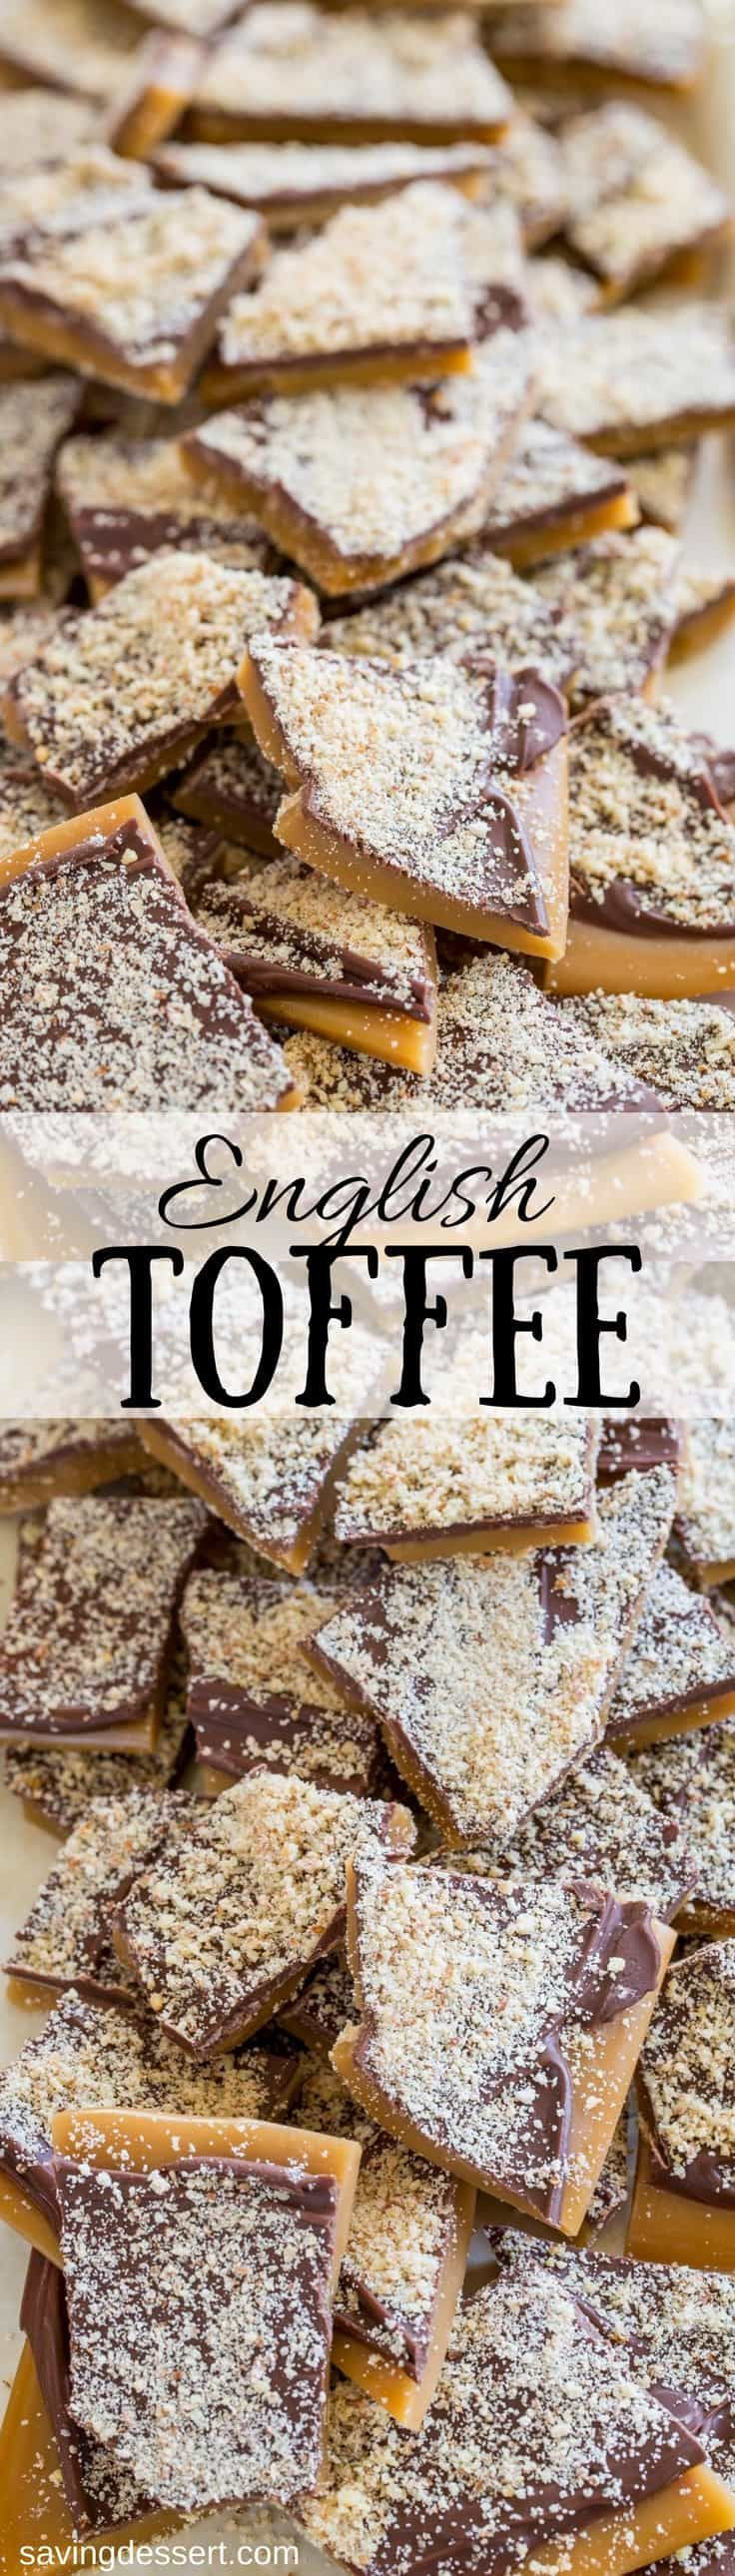 Easy to make and perfect for gifting, Old Fashioned English Toffee dusted with grated almonds - a family favorite for generations! www.savingdessert.com #savingroomfordessert #toffee #christmas #candy #englishtoffee